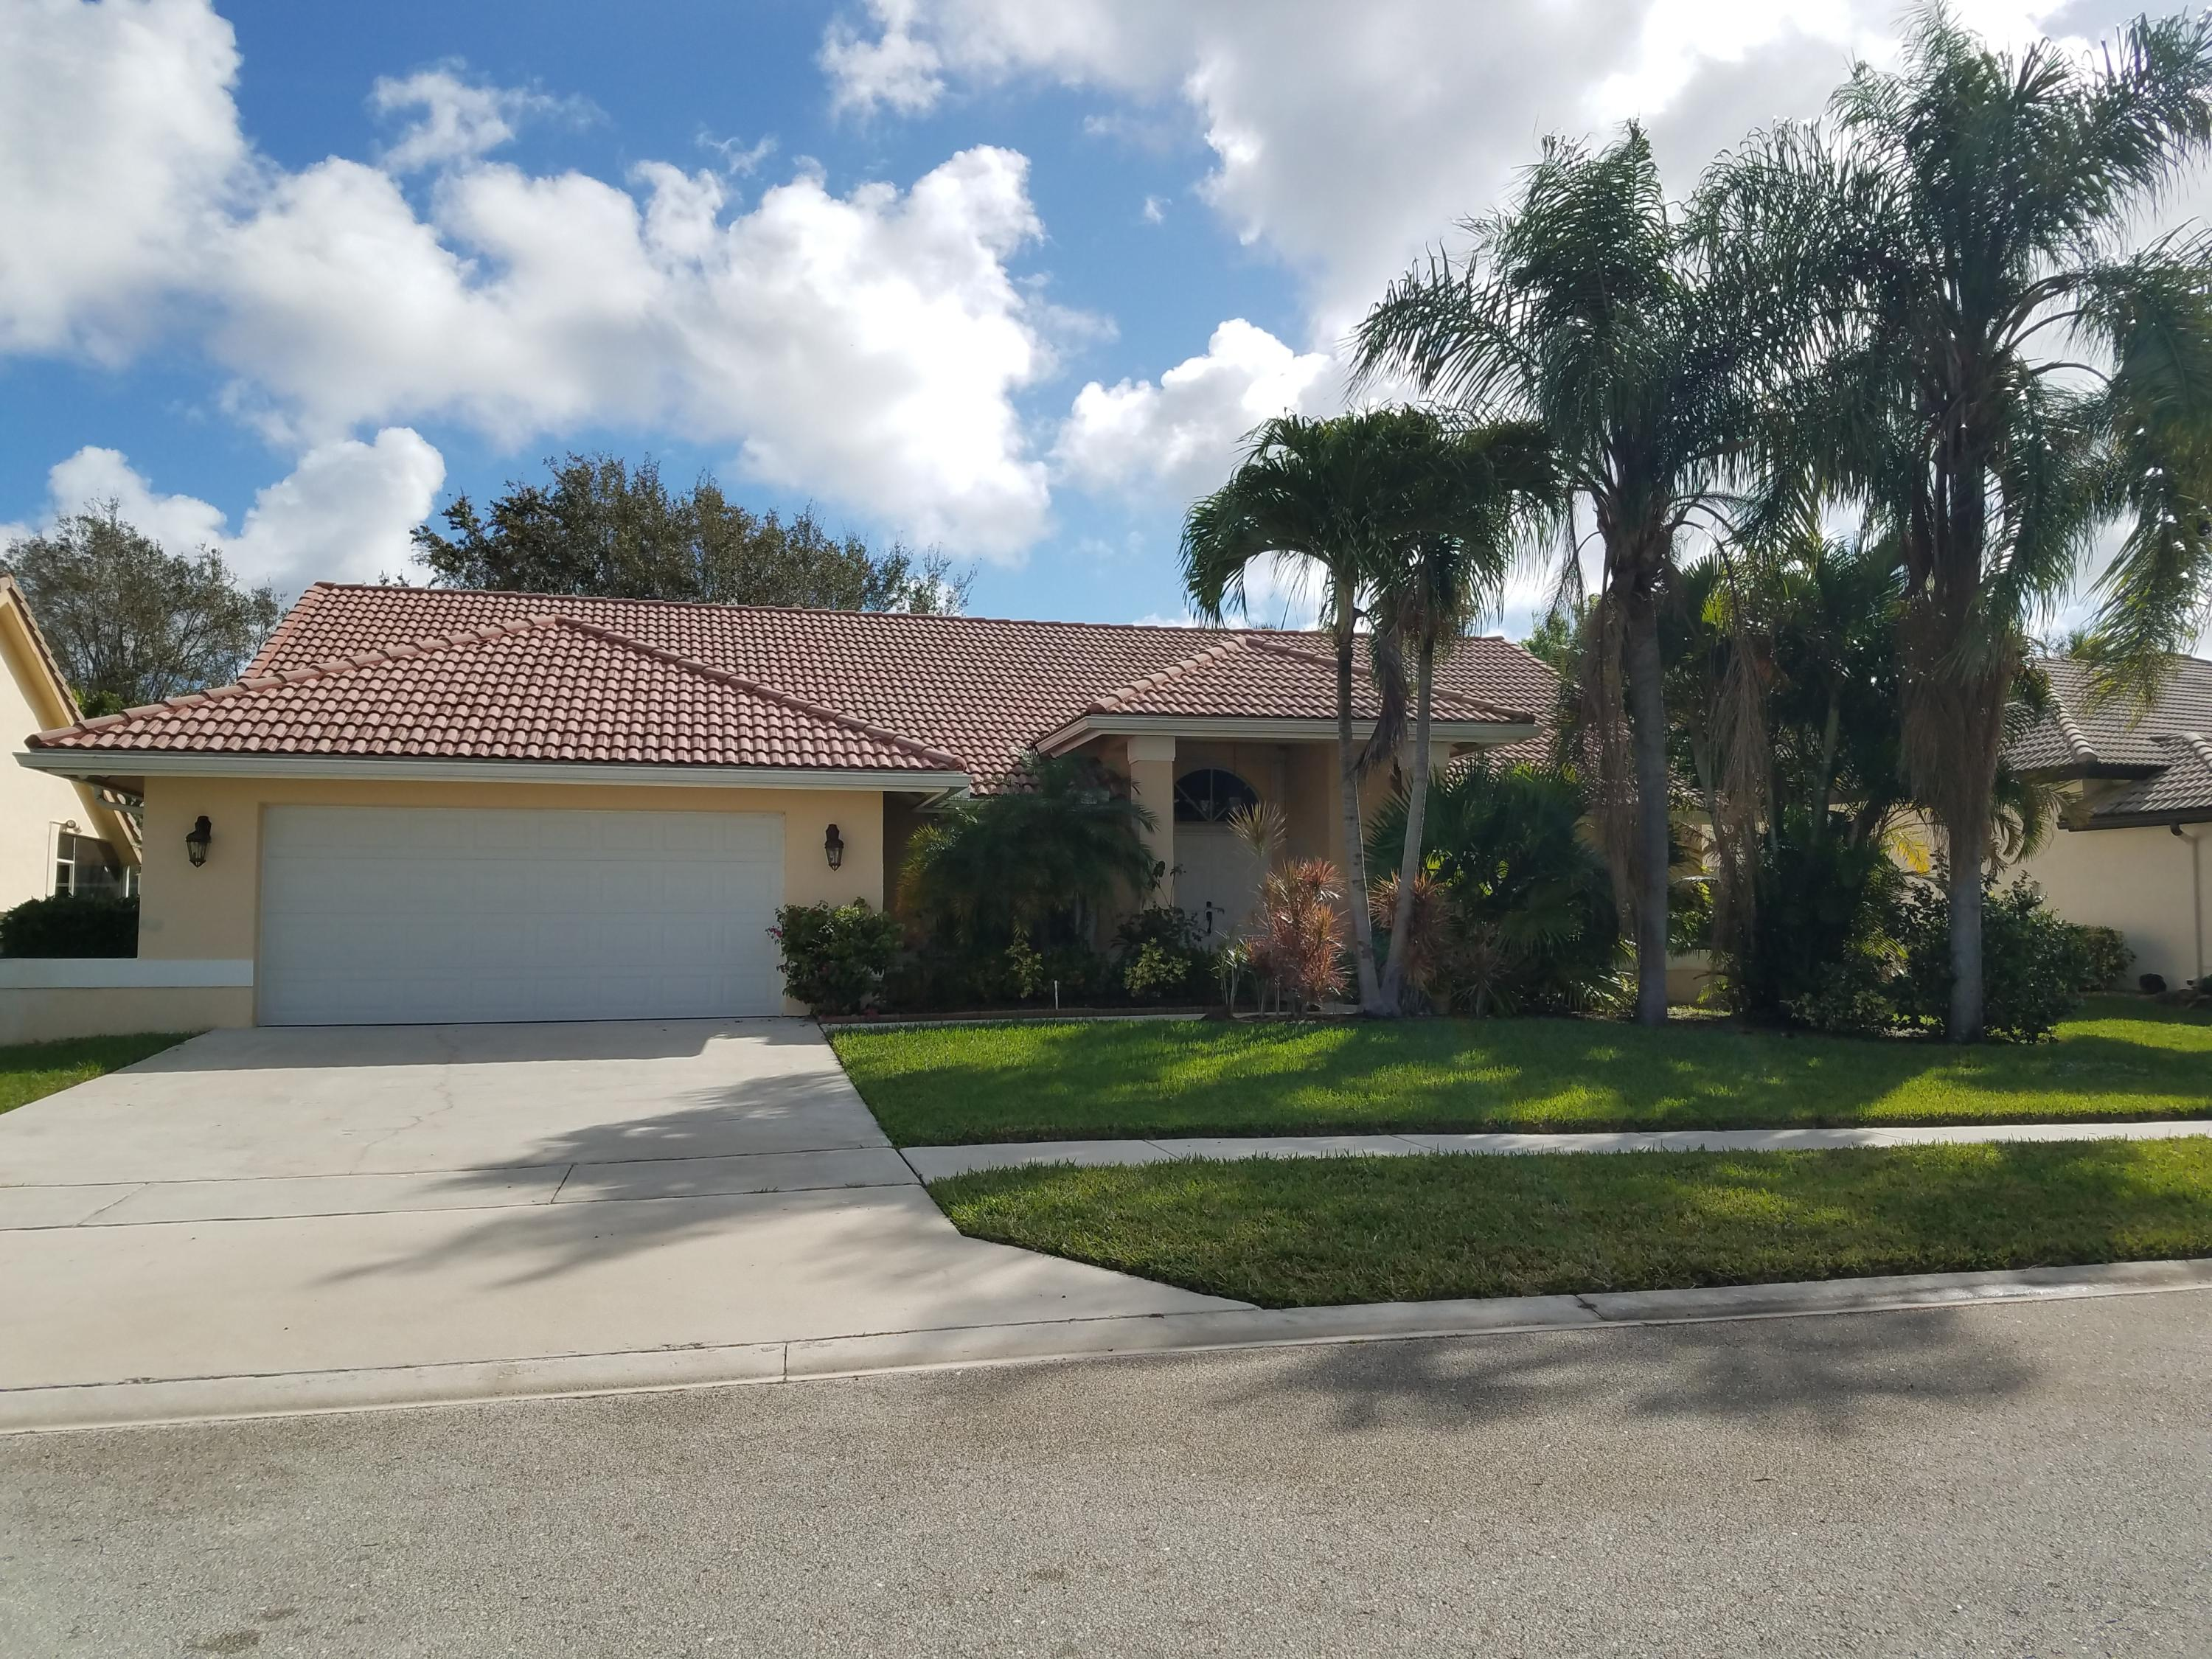 6658 Blue Bay Circle, Lake Worth, Florida 33467, 4 Bedrooms Bedrooms, ,2 BathroomsBathrooms,A,Single family,Blue Bay,RX-10508254